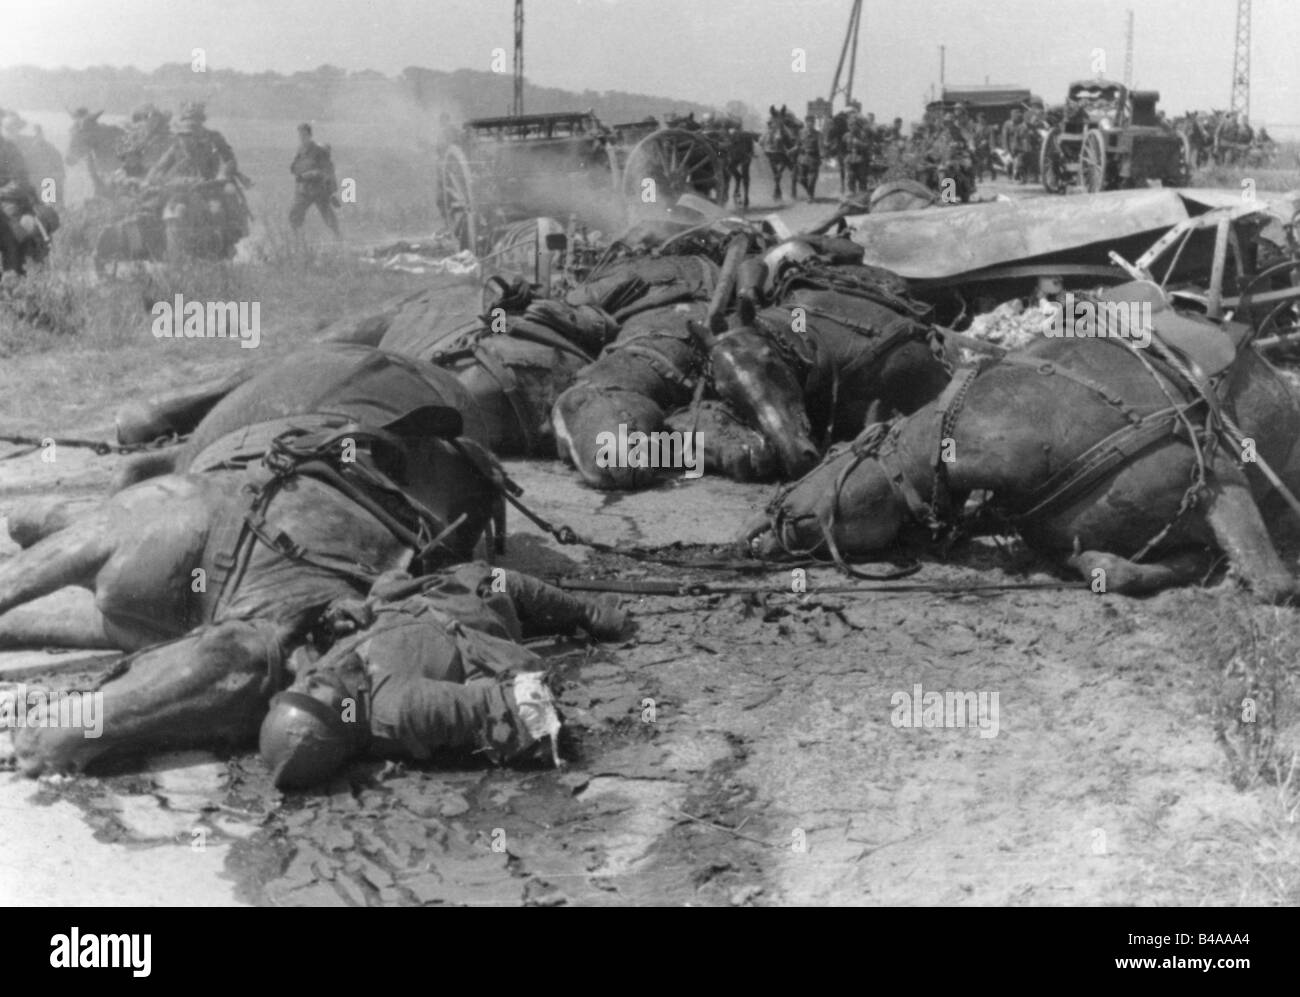 events, Second World War / WWII, France, French artillery team received a direct hit, May / June 1940, Additional Stock Photo